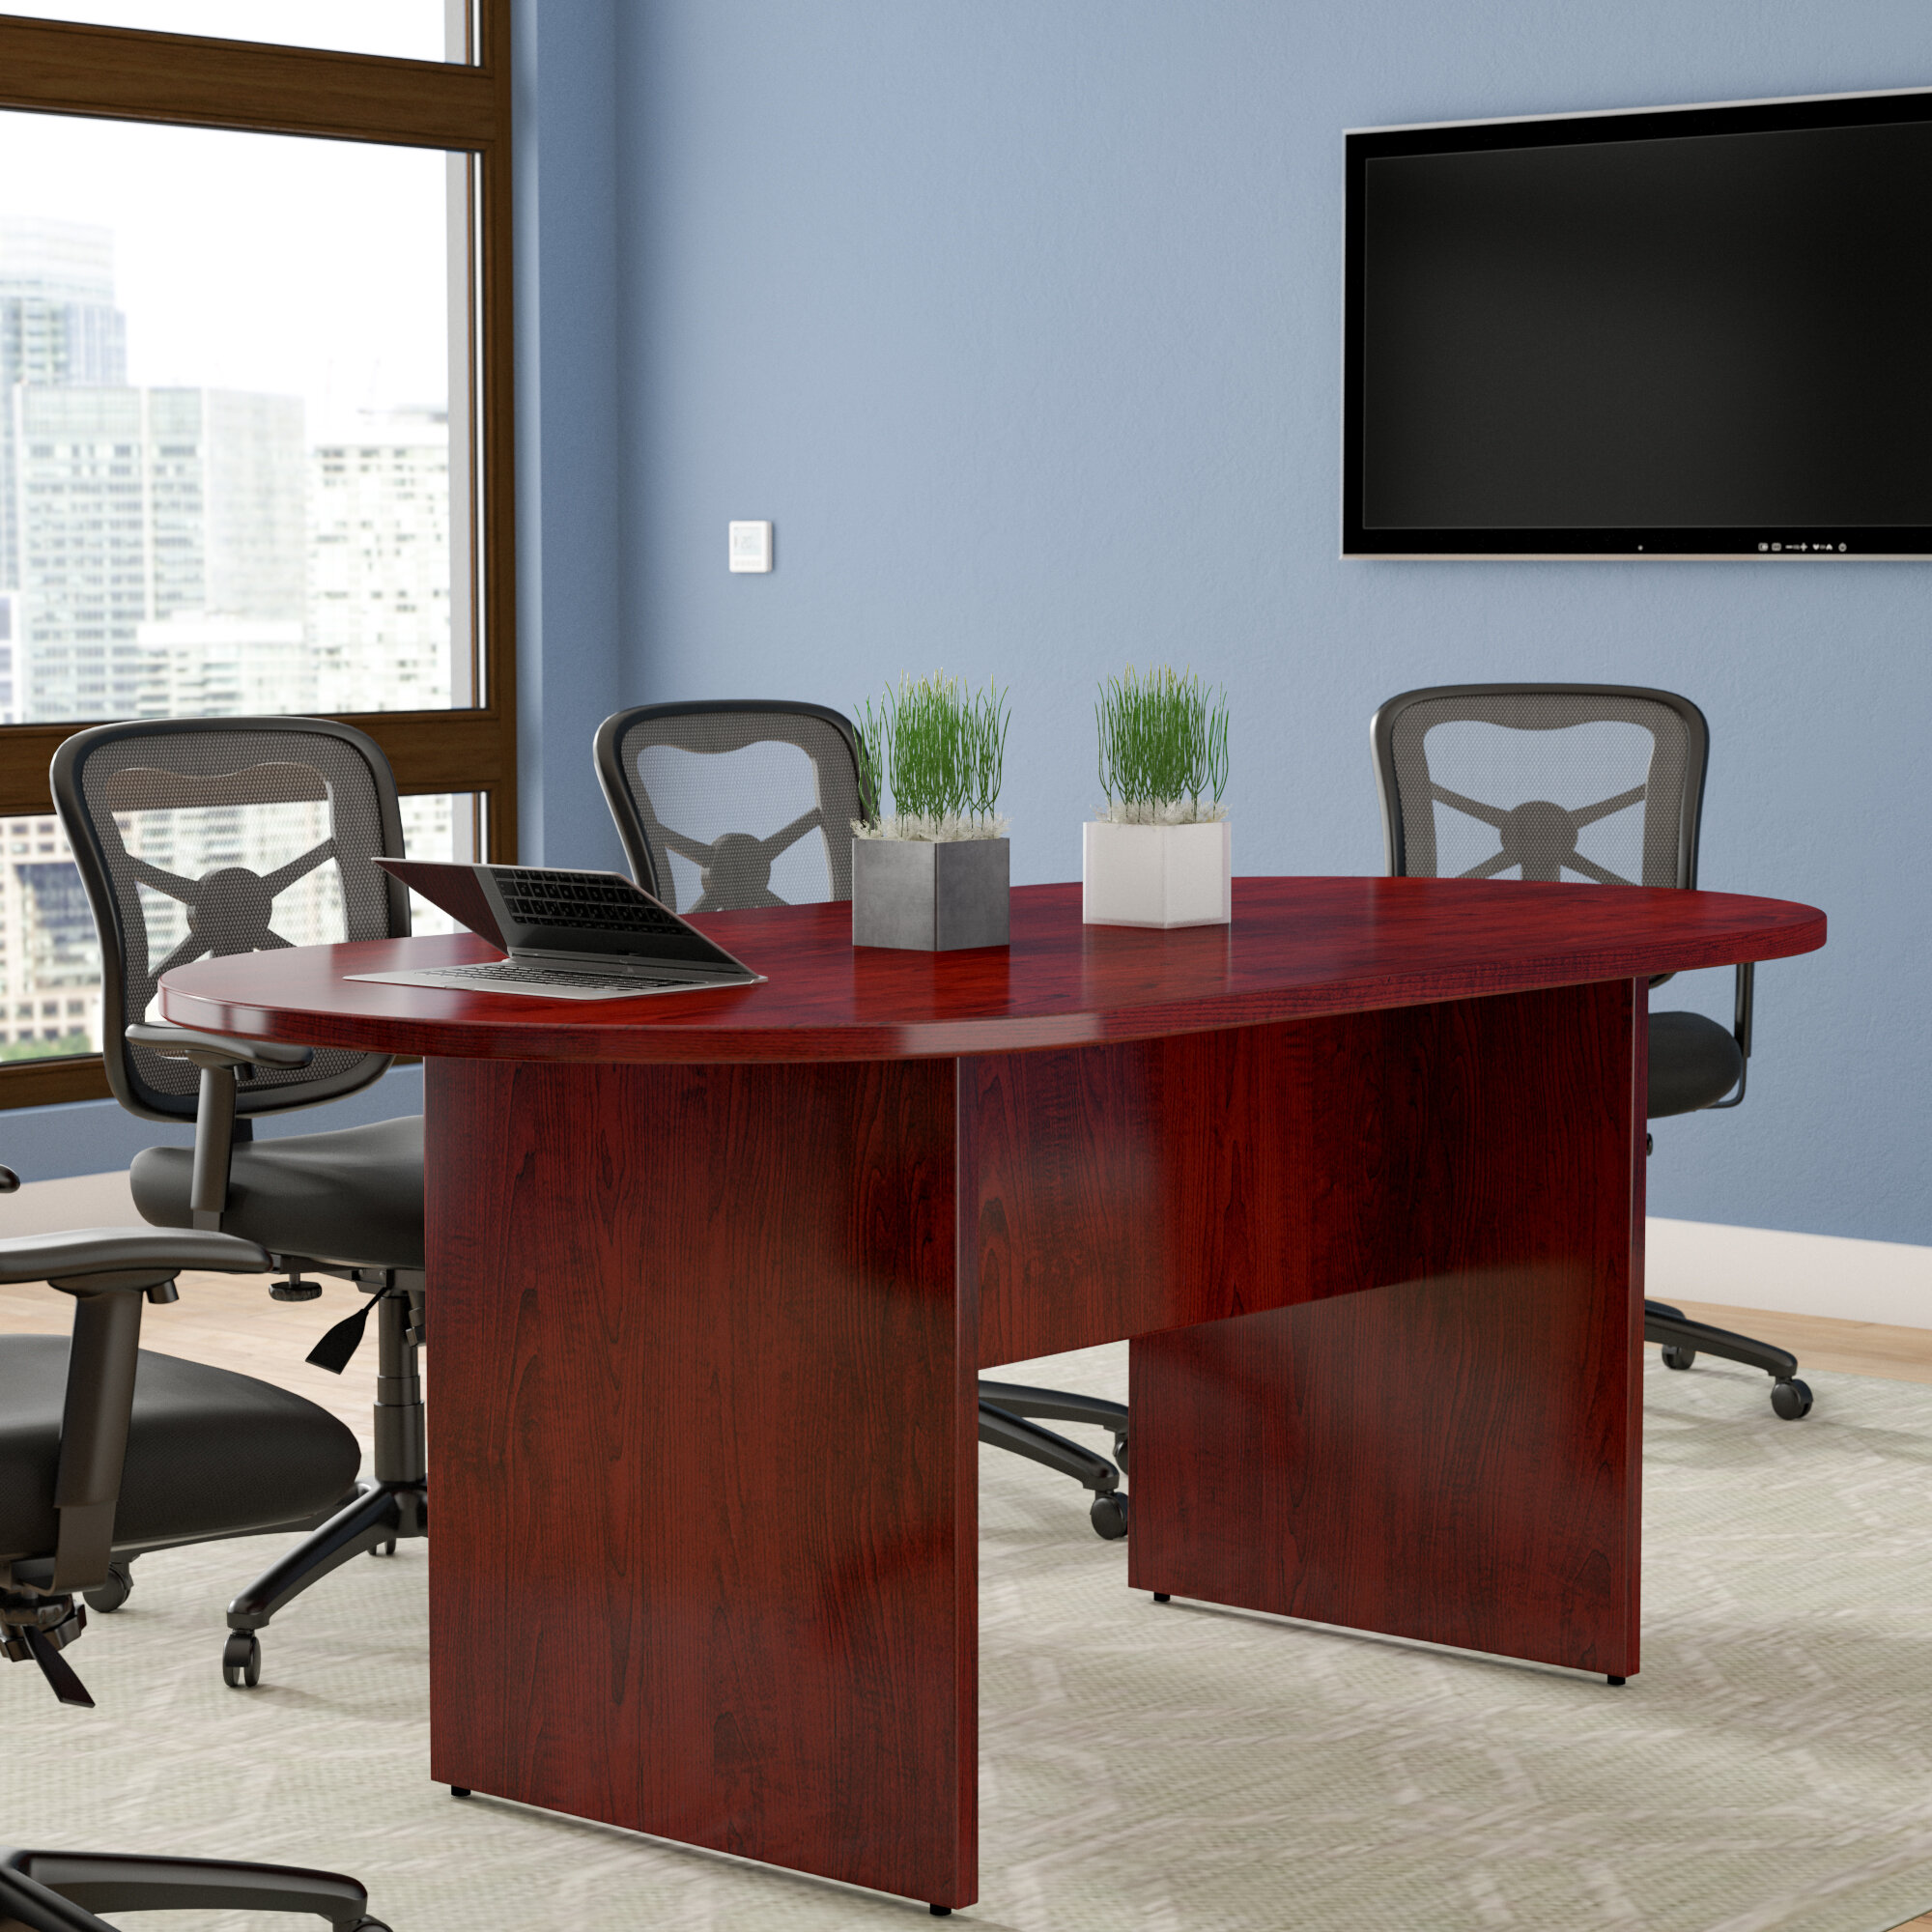 Red Barrel Studio Greenburgh RacetrackOval H X W X L - 72 conference table